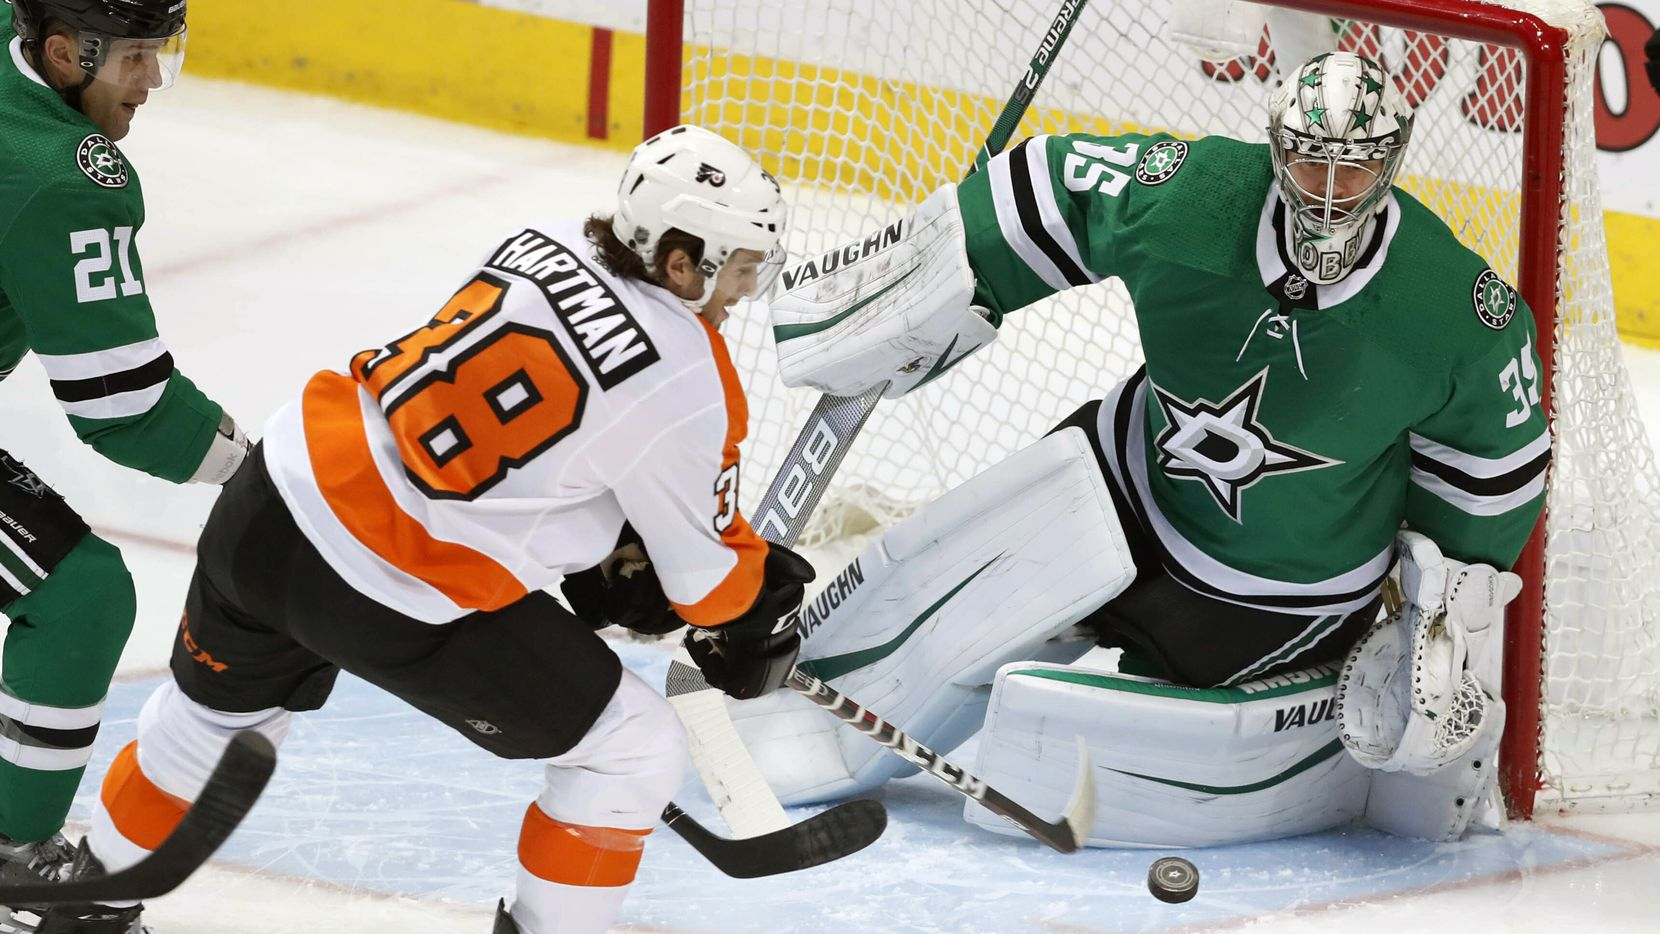 Philadelphia Flyers right wing Ryan Hartman (38) attacks the goal against Dallas Stars defenseman Ben Lovejoy (21) and goaltender Anton Khudobin (35) during the first period of an NHL hockey game in Dallas, Tuesday, April 2, 2019. (AP Photo/LM Otero)